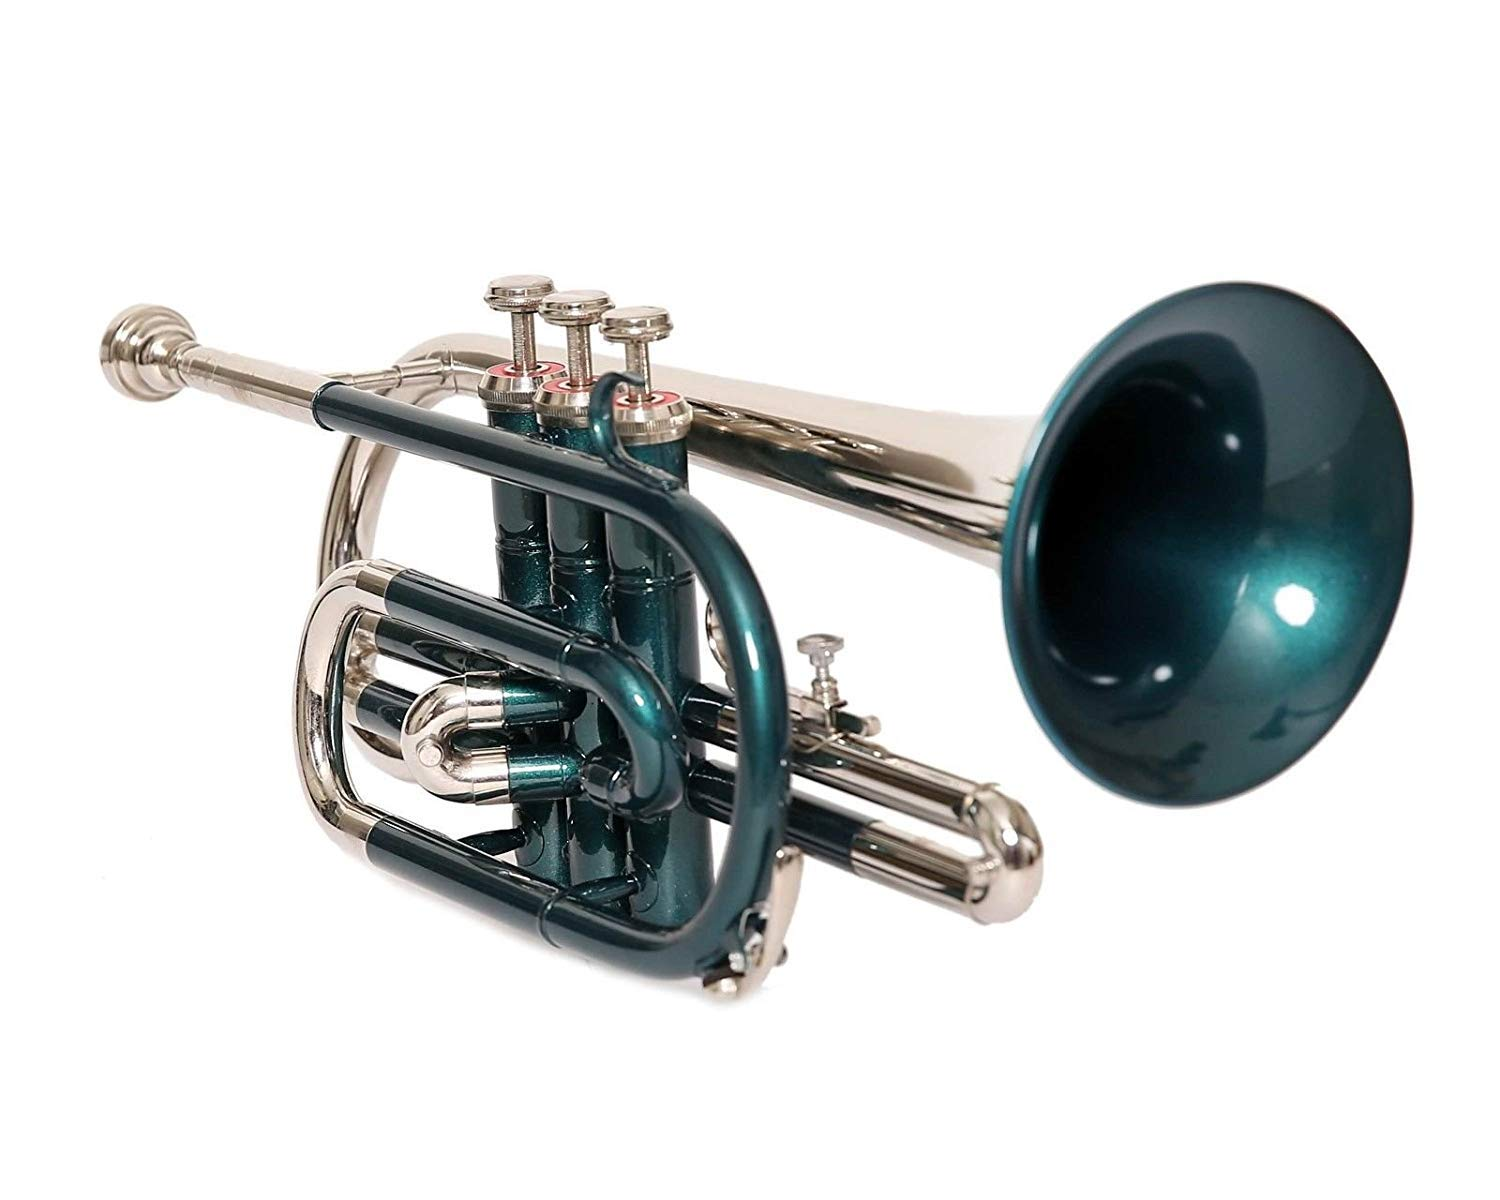 NASIR ALI BRAND NEW GREEN NICKEL FINISH Bb FLAT CORNET TRUMPET +FREE CASE+MOUTHPIECE